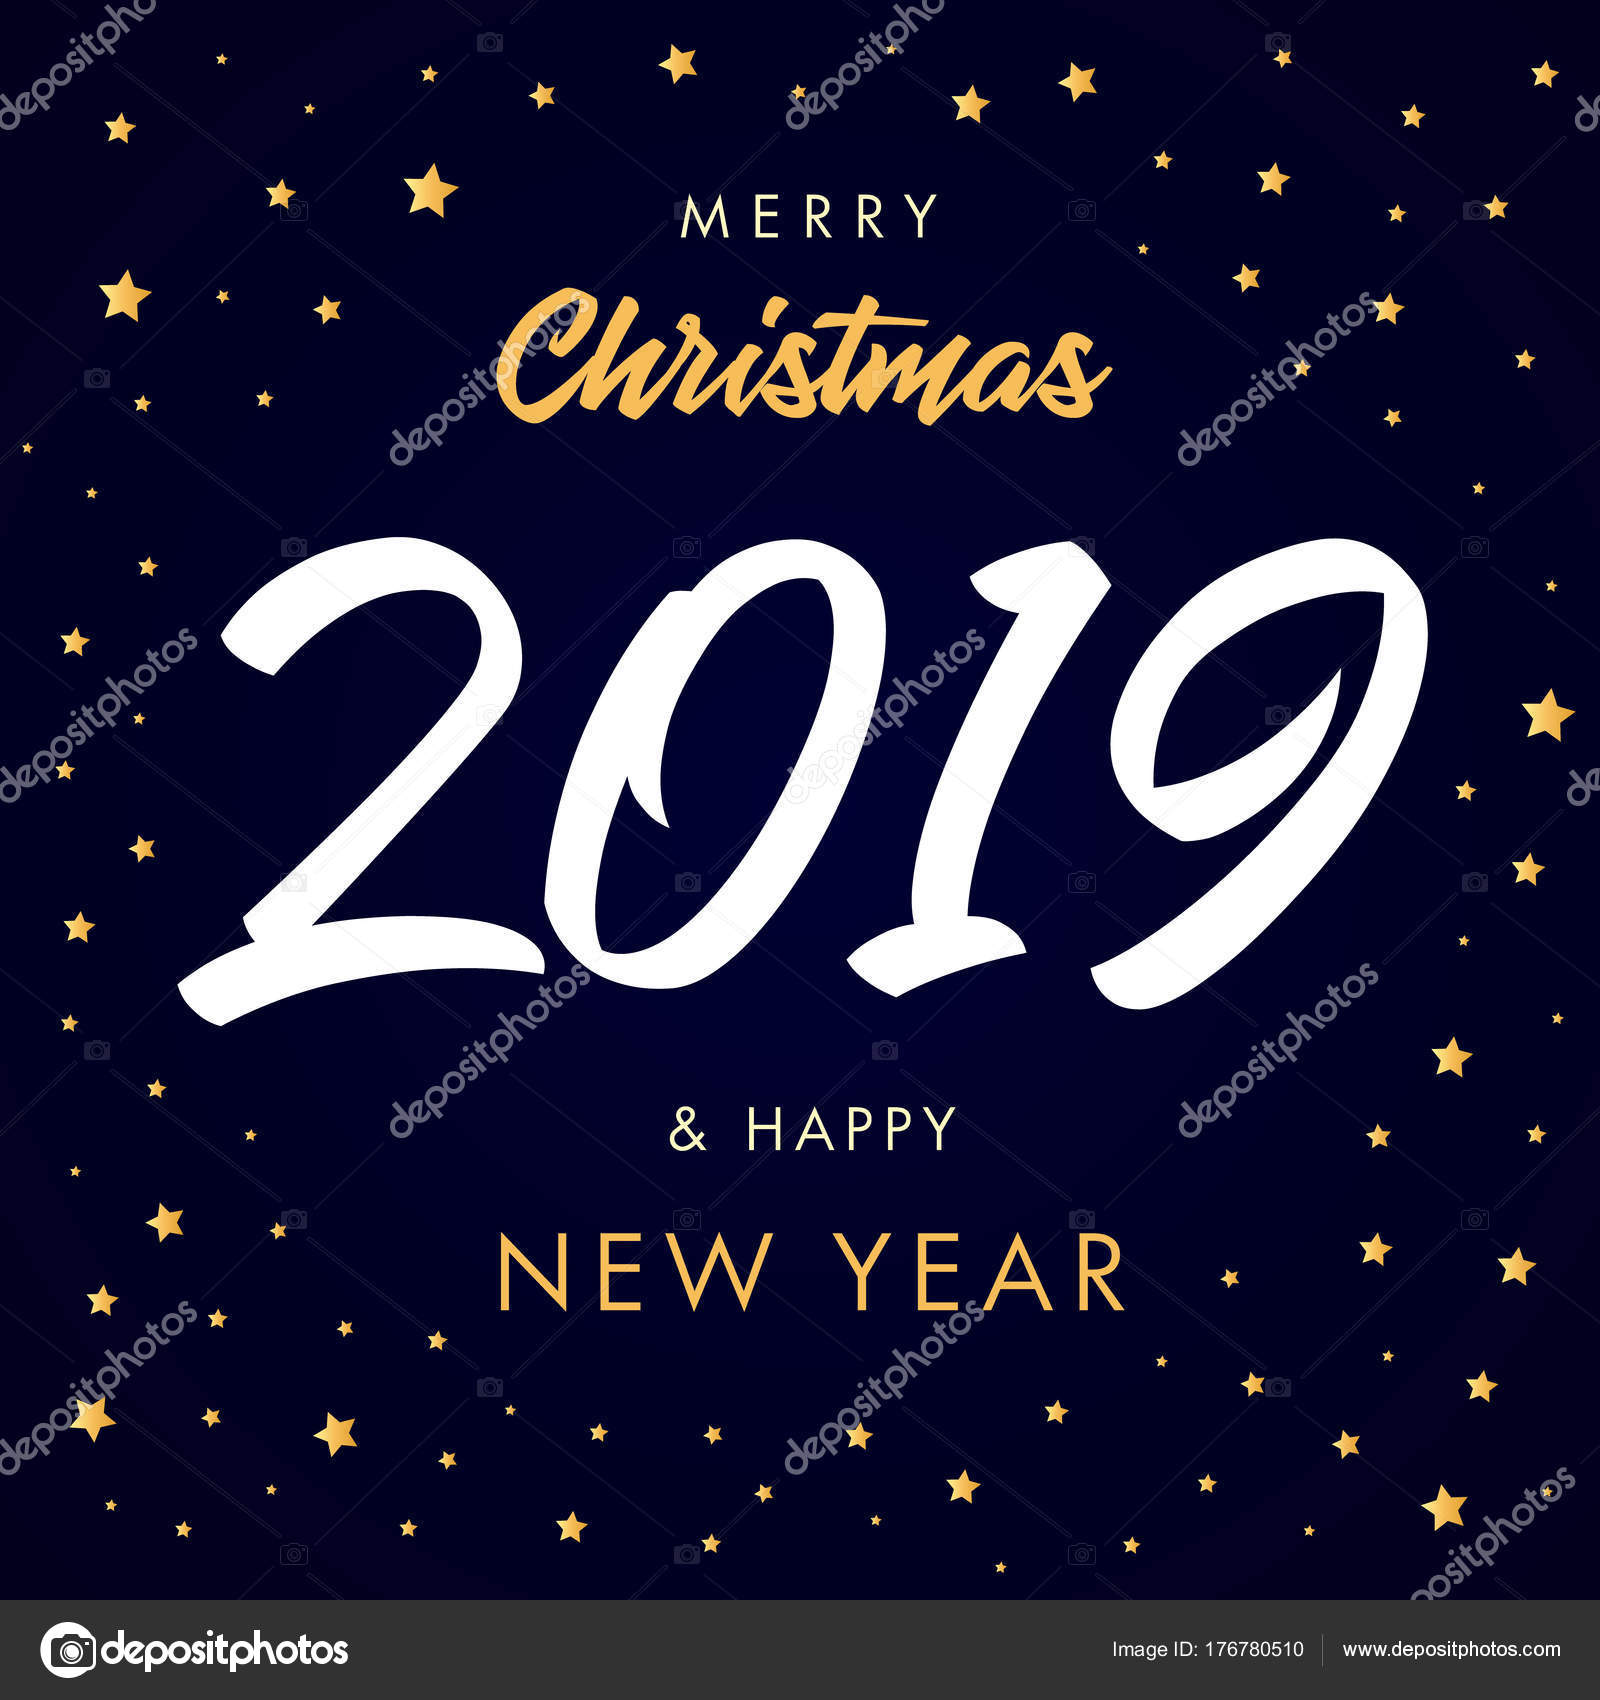 Merry christmas calligraphy 2019 happy new year greeting card vector merry christmas calligraphy 2019 happy new year greeting card vector stock vector m4hsunfo